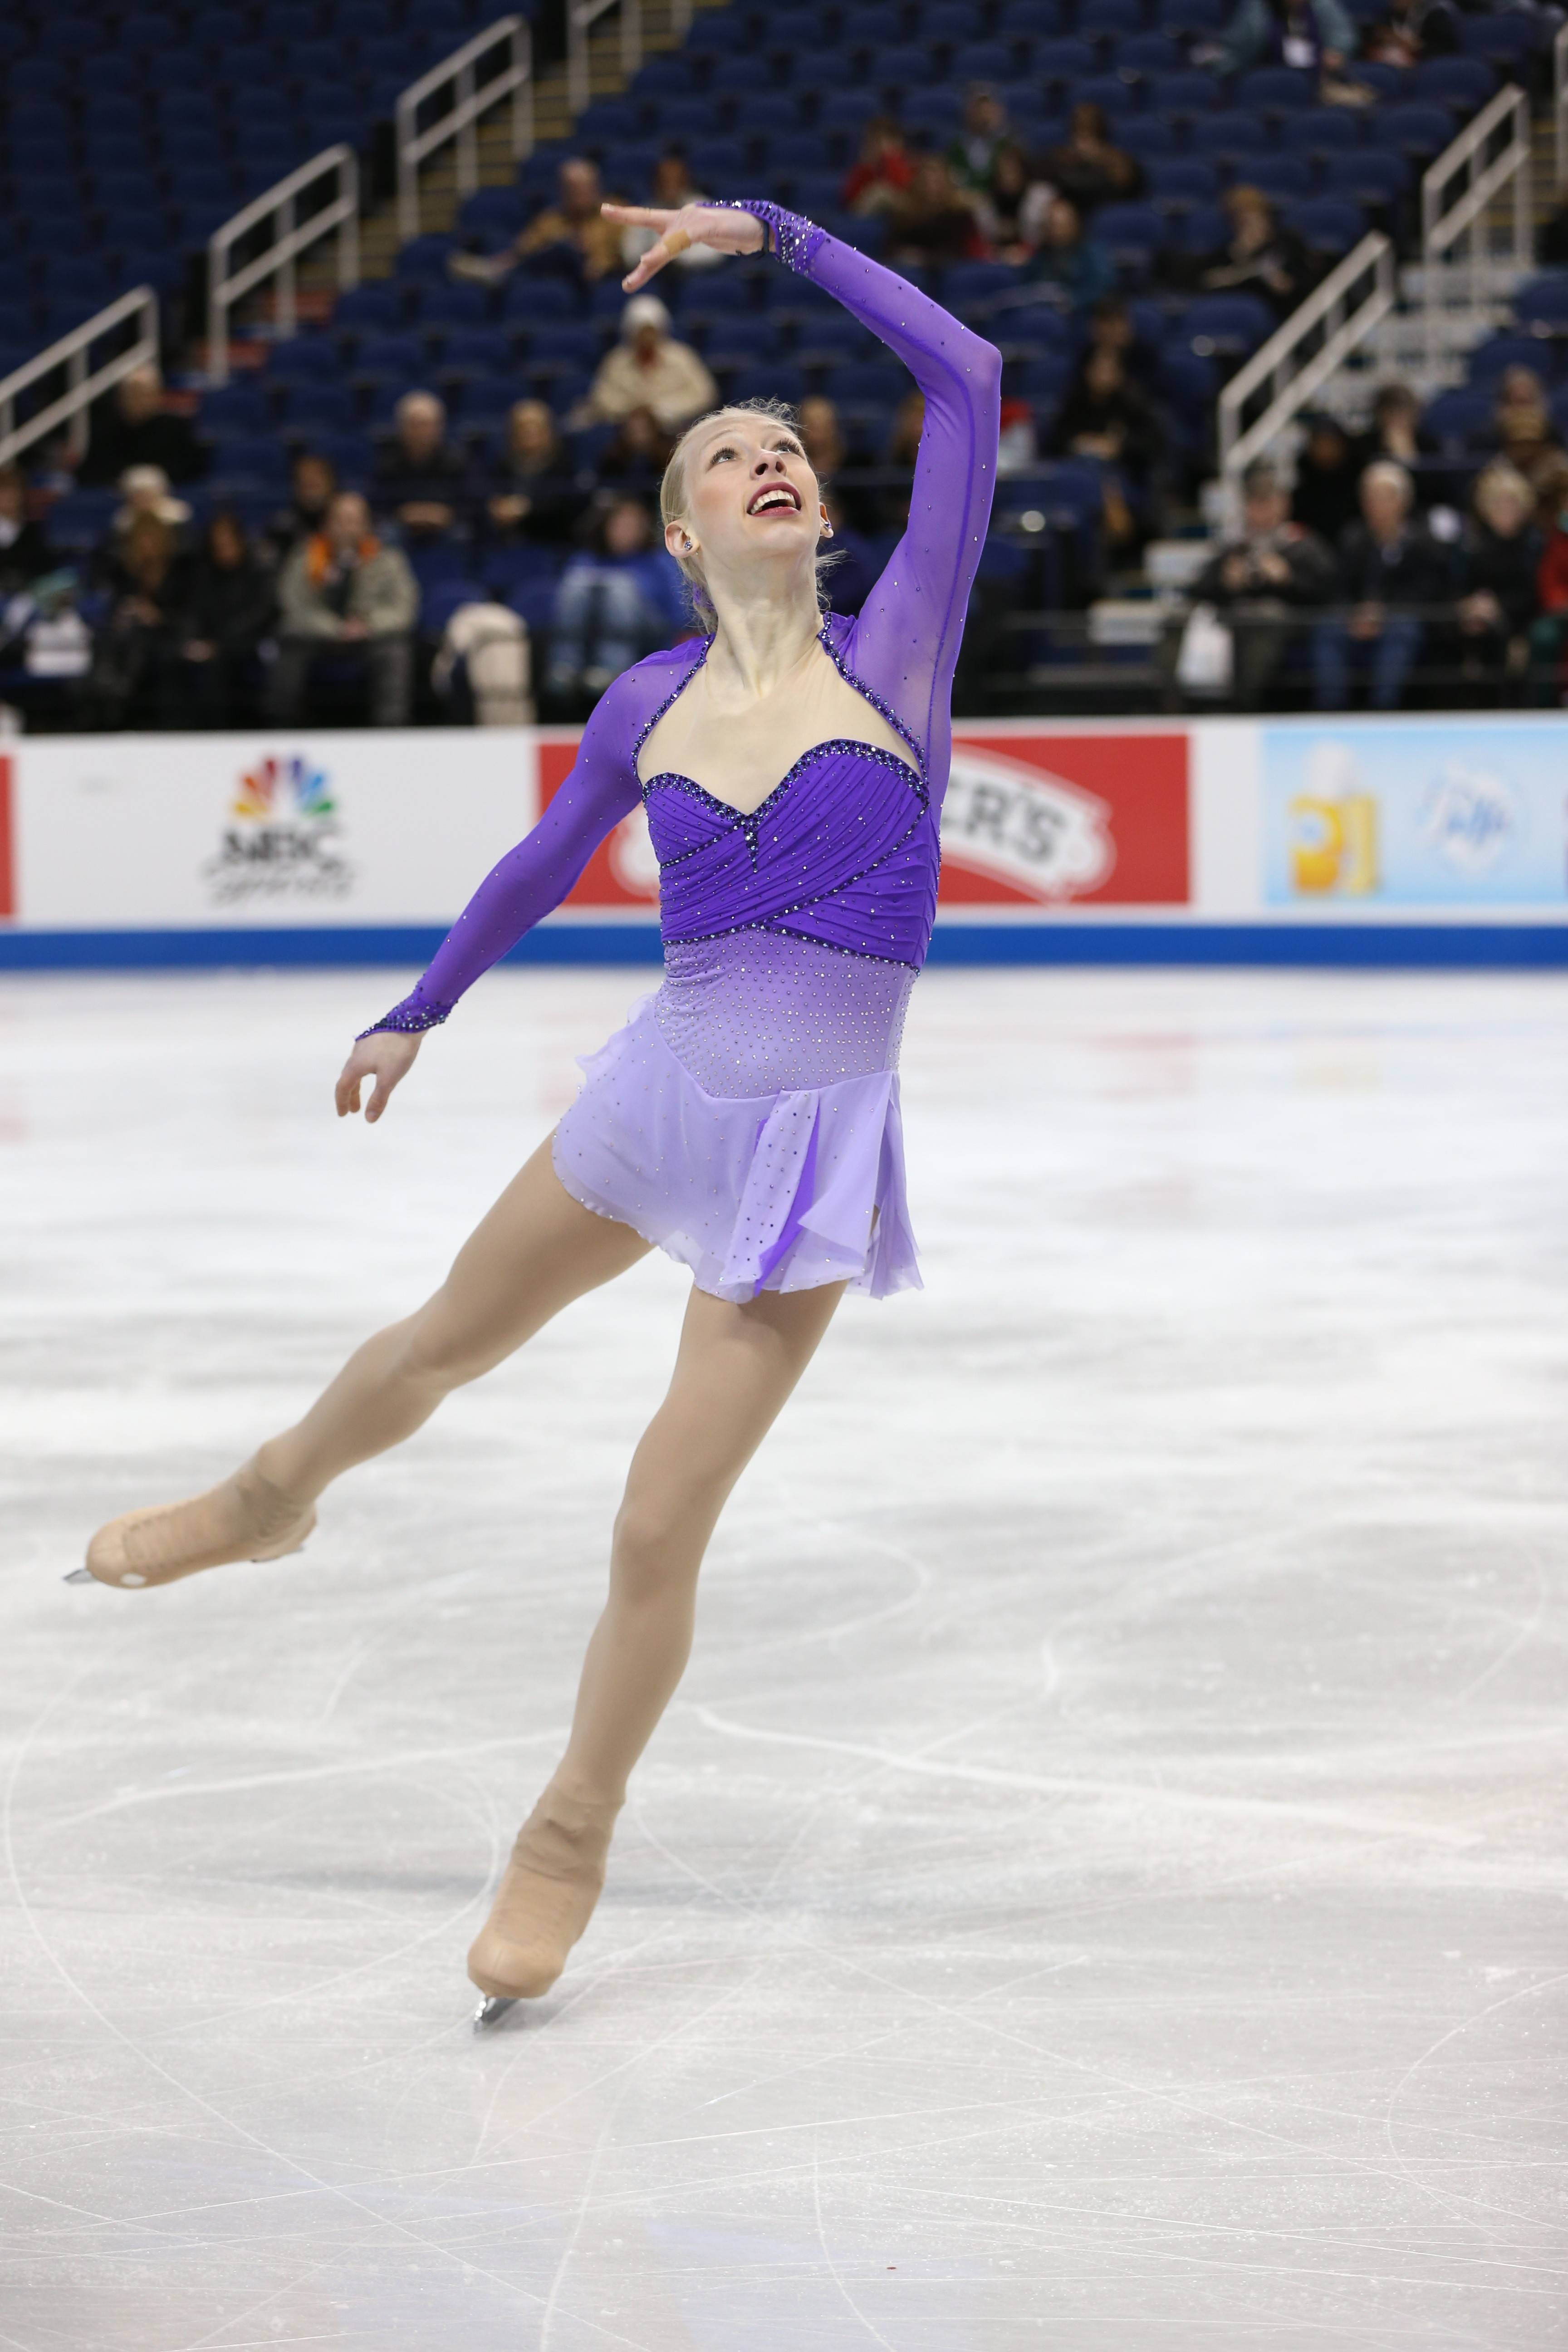 Carpentersville skater's gold adds to suburban medal count